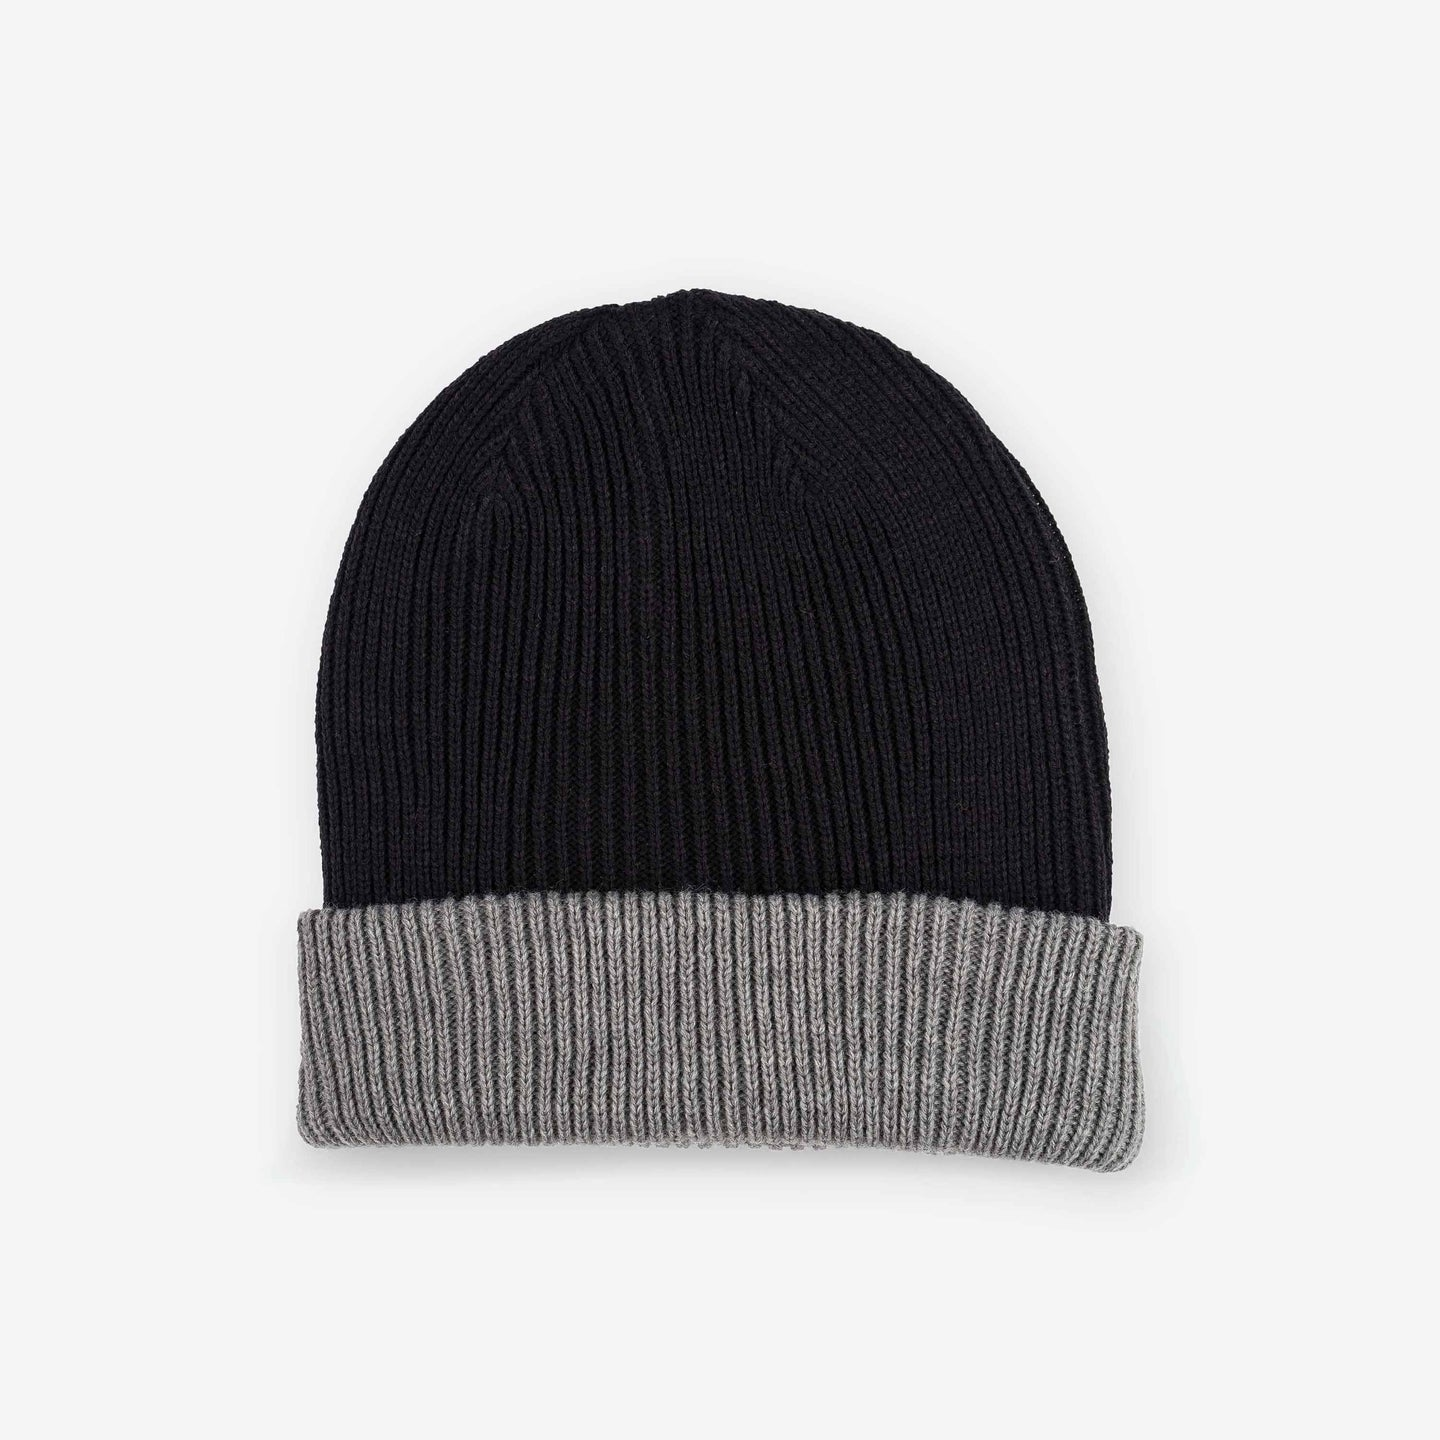 Reversible Rib Knit Cuff Hat Contrast